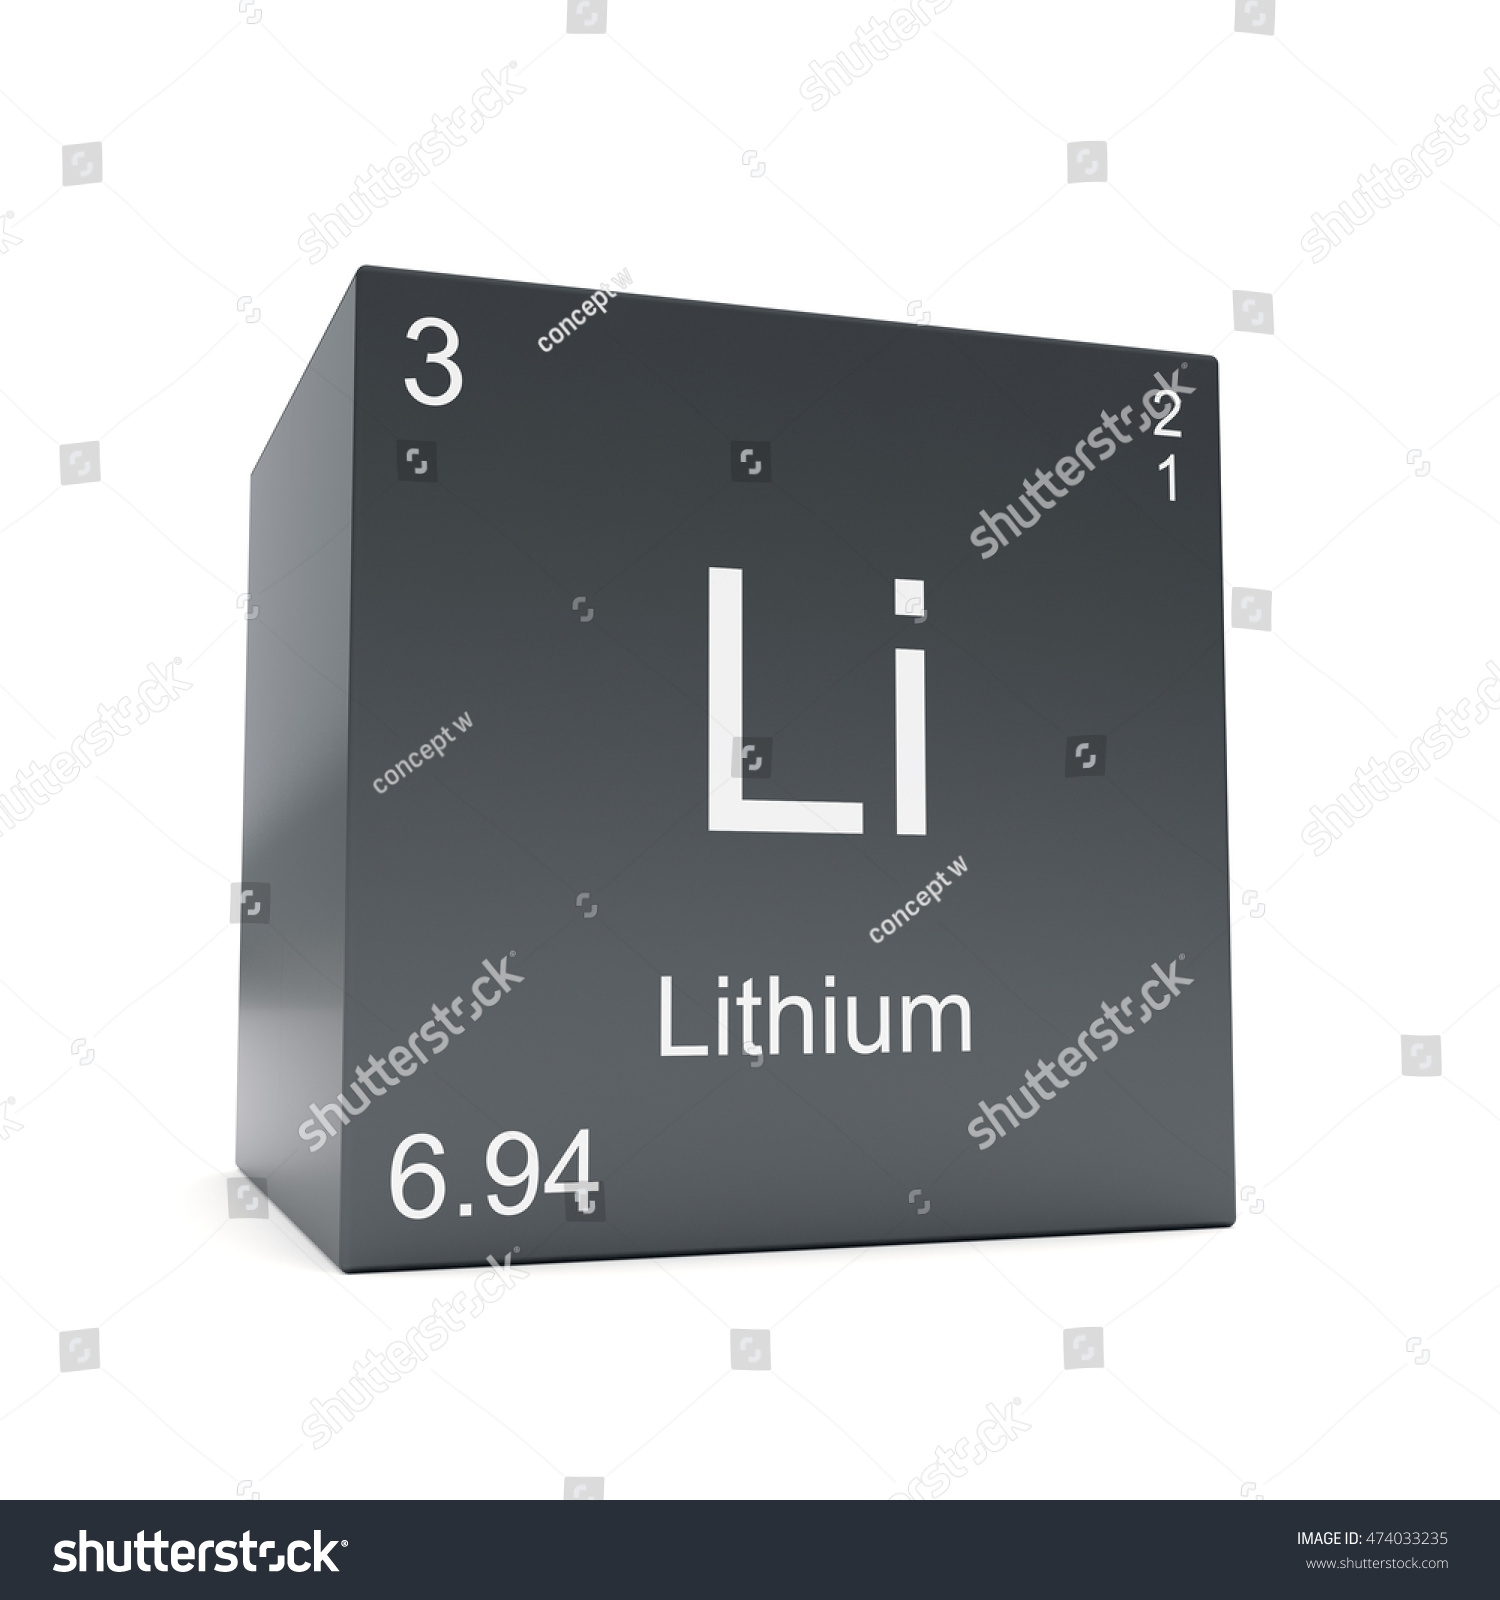 Periodic table lithium facts images periodic table images periodic table lithium facts images periodic table images lithium periodic table facts image collections periodic table gamestrikefo Image collections